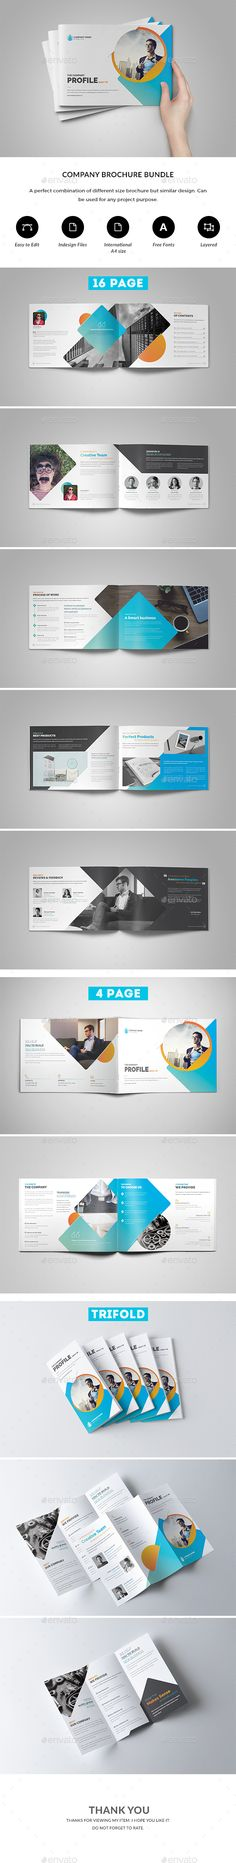 Company Brochure Bundle — InDesign INDD #light #proposal template • Available here ➝ https://graphicriver.net/item/company-brochure-bundle/20892427?ref=pxcr